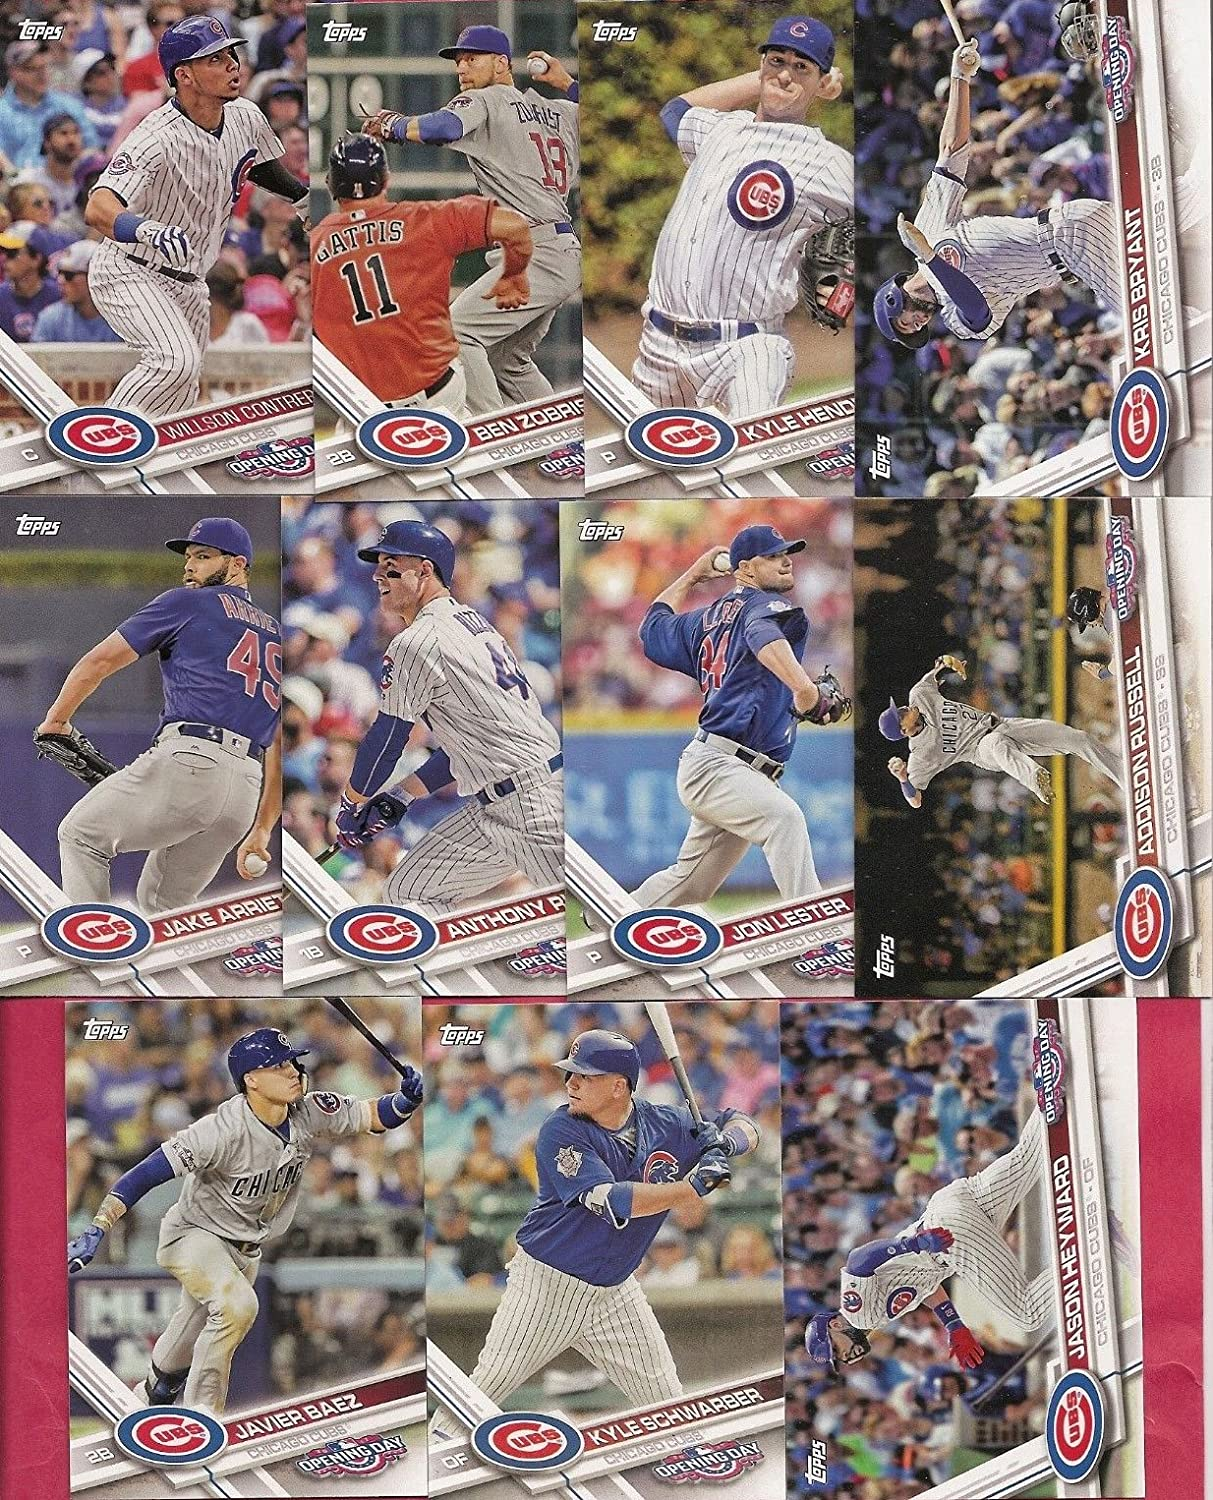 Chicago Cubs 2017 Topps Complete Mint Hand Collated Team Set with Kris Bryant Kyle Schwarber 2016 World Series Champions Highlights plus